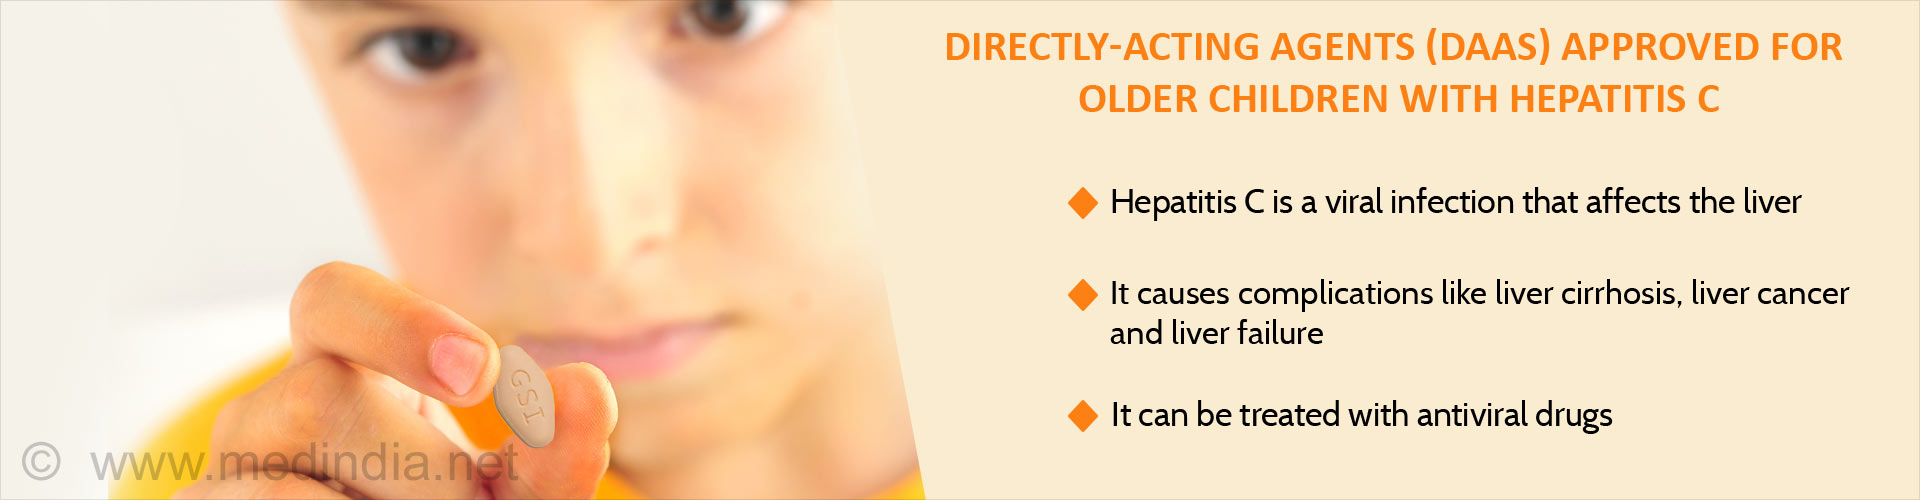 Directly-acting agents (DAAS) approved for older children with hepatitis C